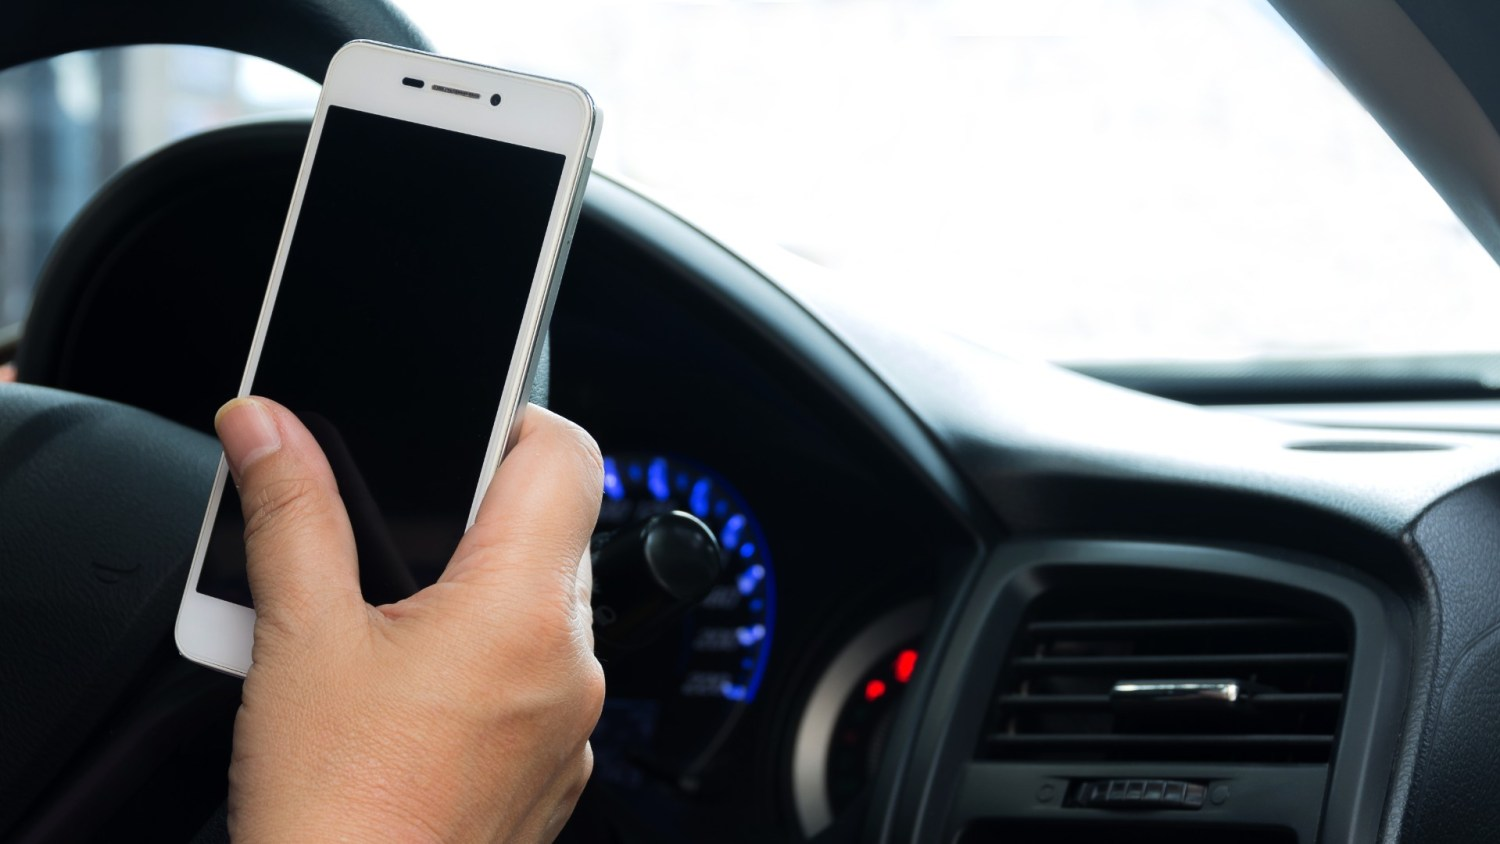 mobile phone driving laws could 'change quickly'